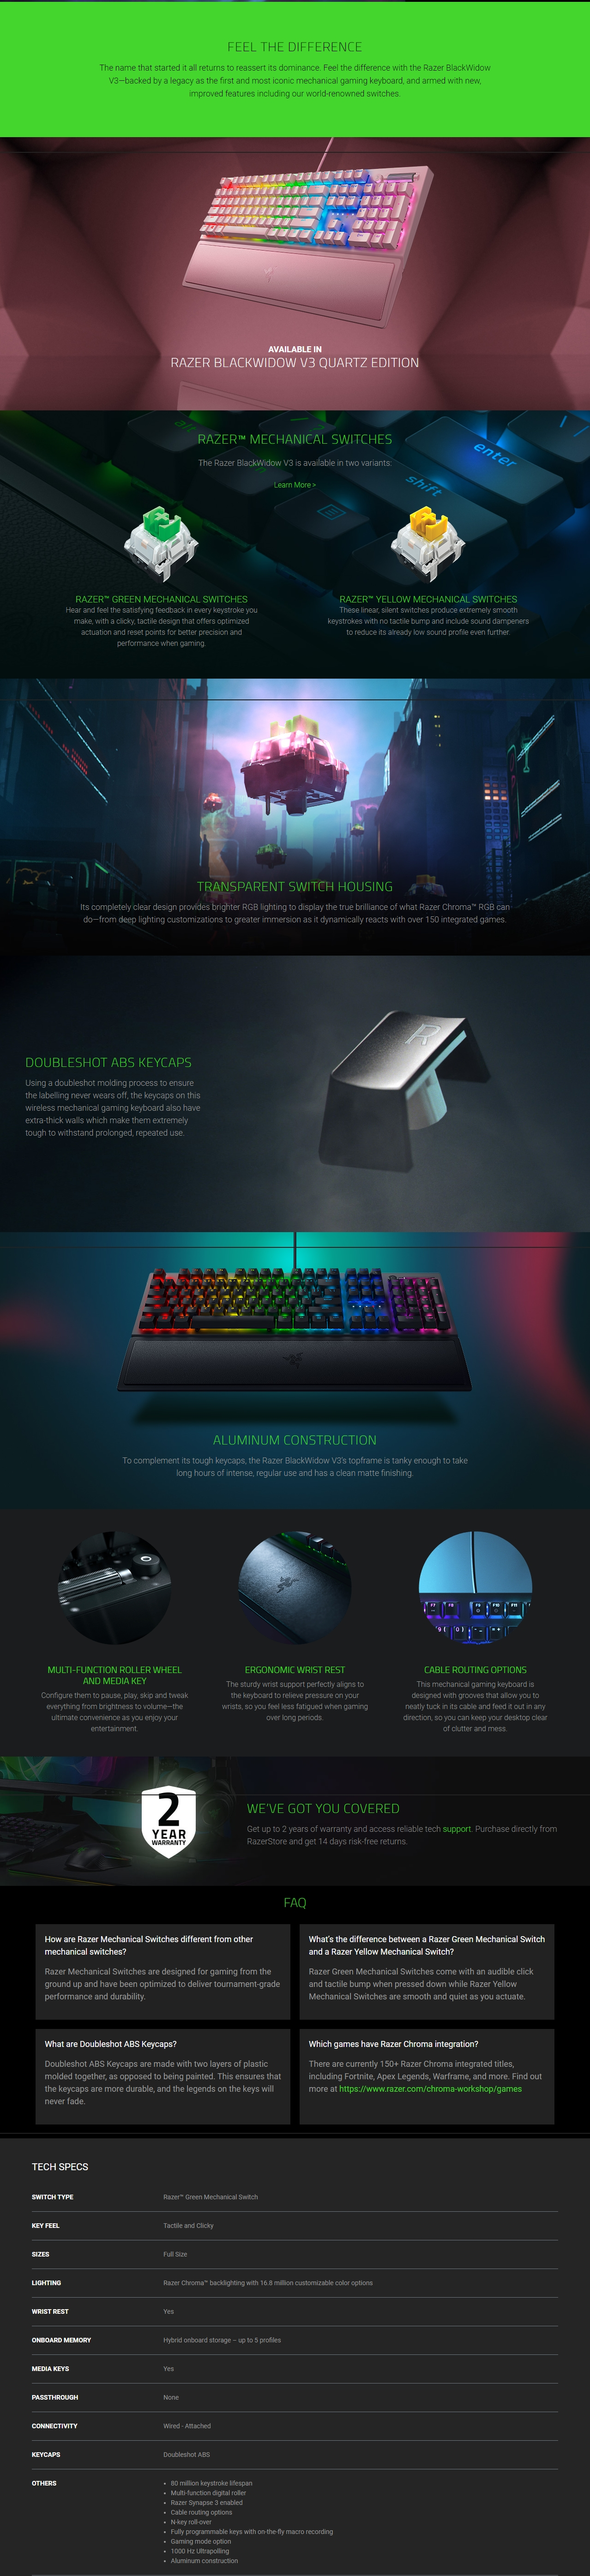 A large marketing image providing additional information about the product Razer Blackwidow V3 Mechanical Gaming Keyboard (Green Switch) - Additional alt info not provided